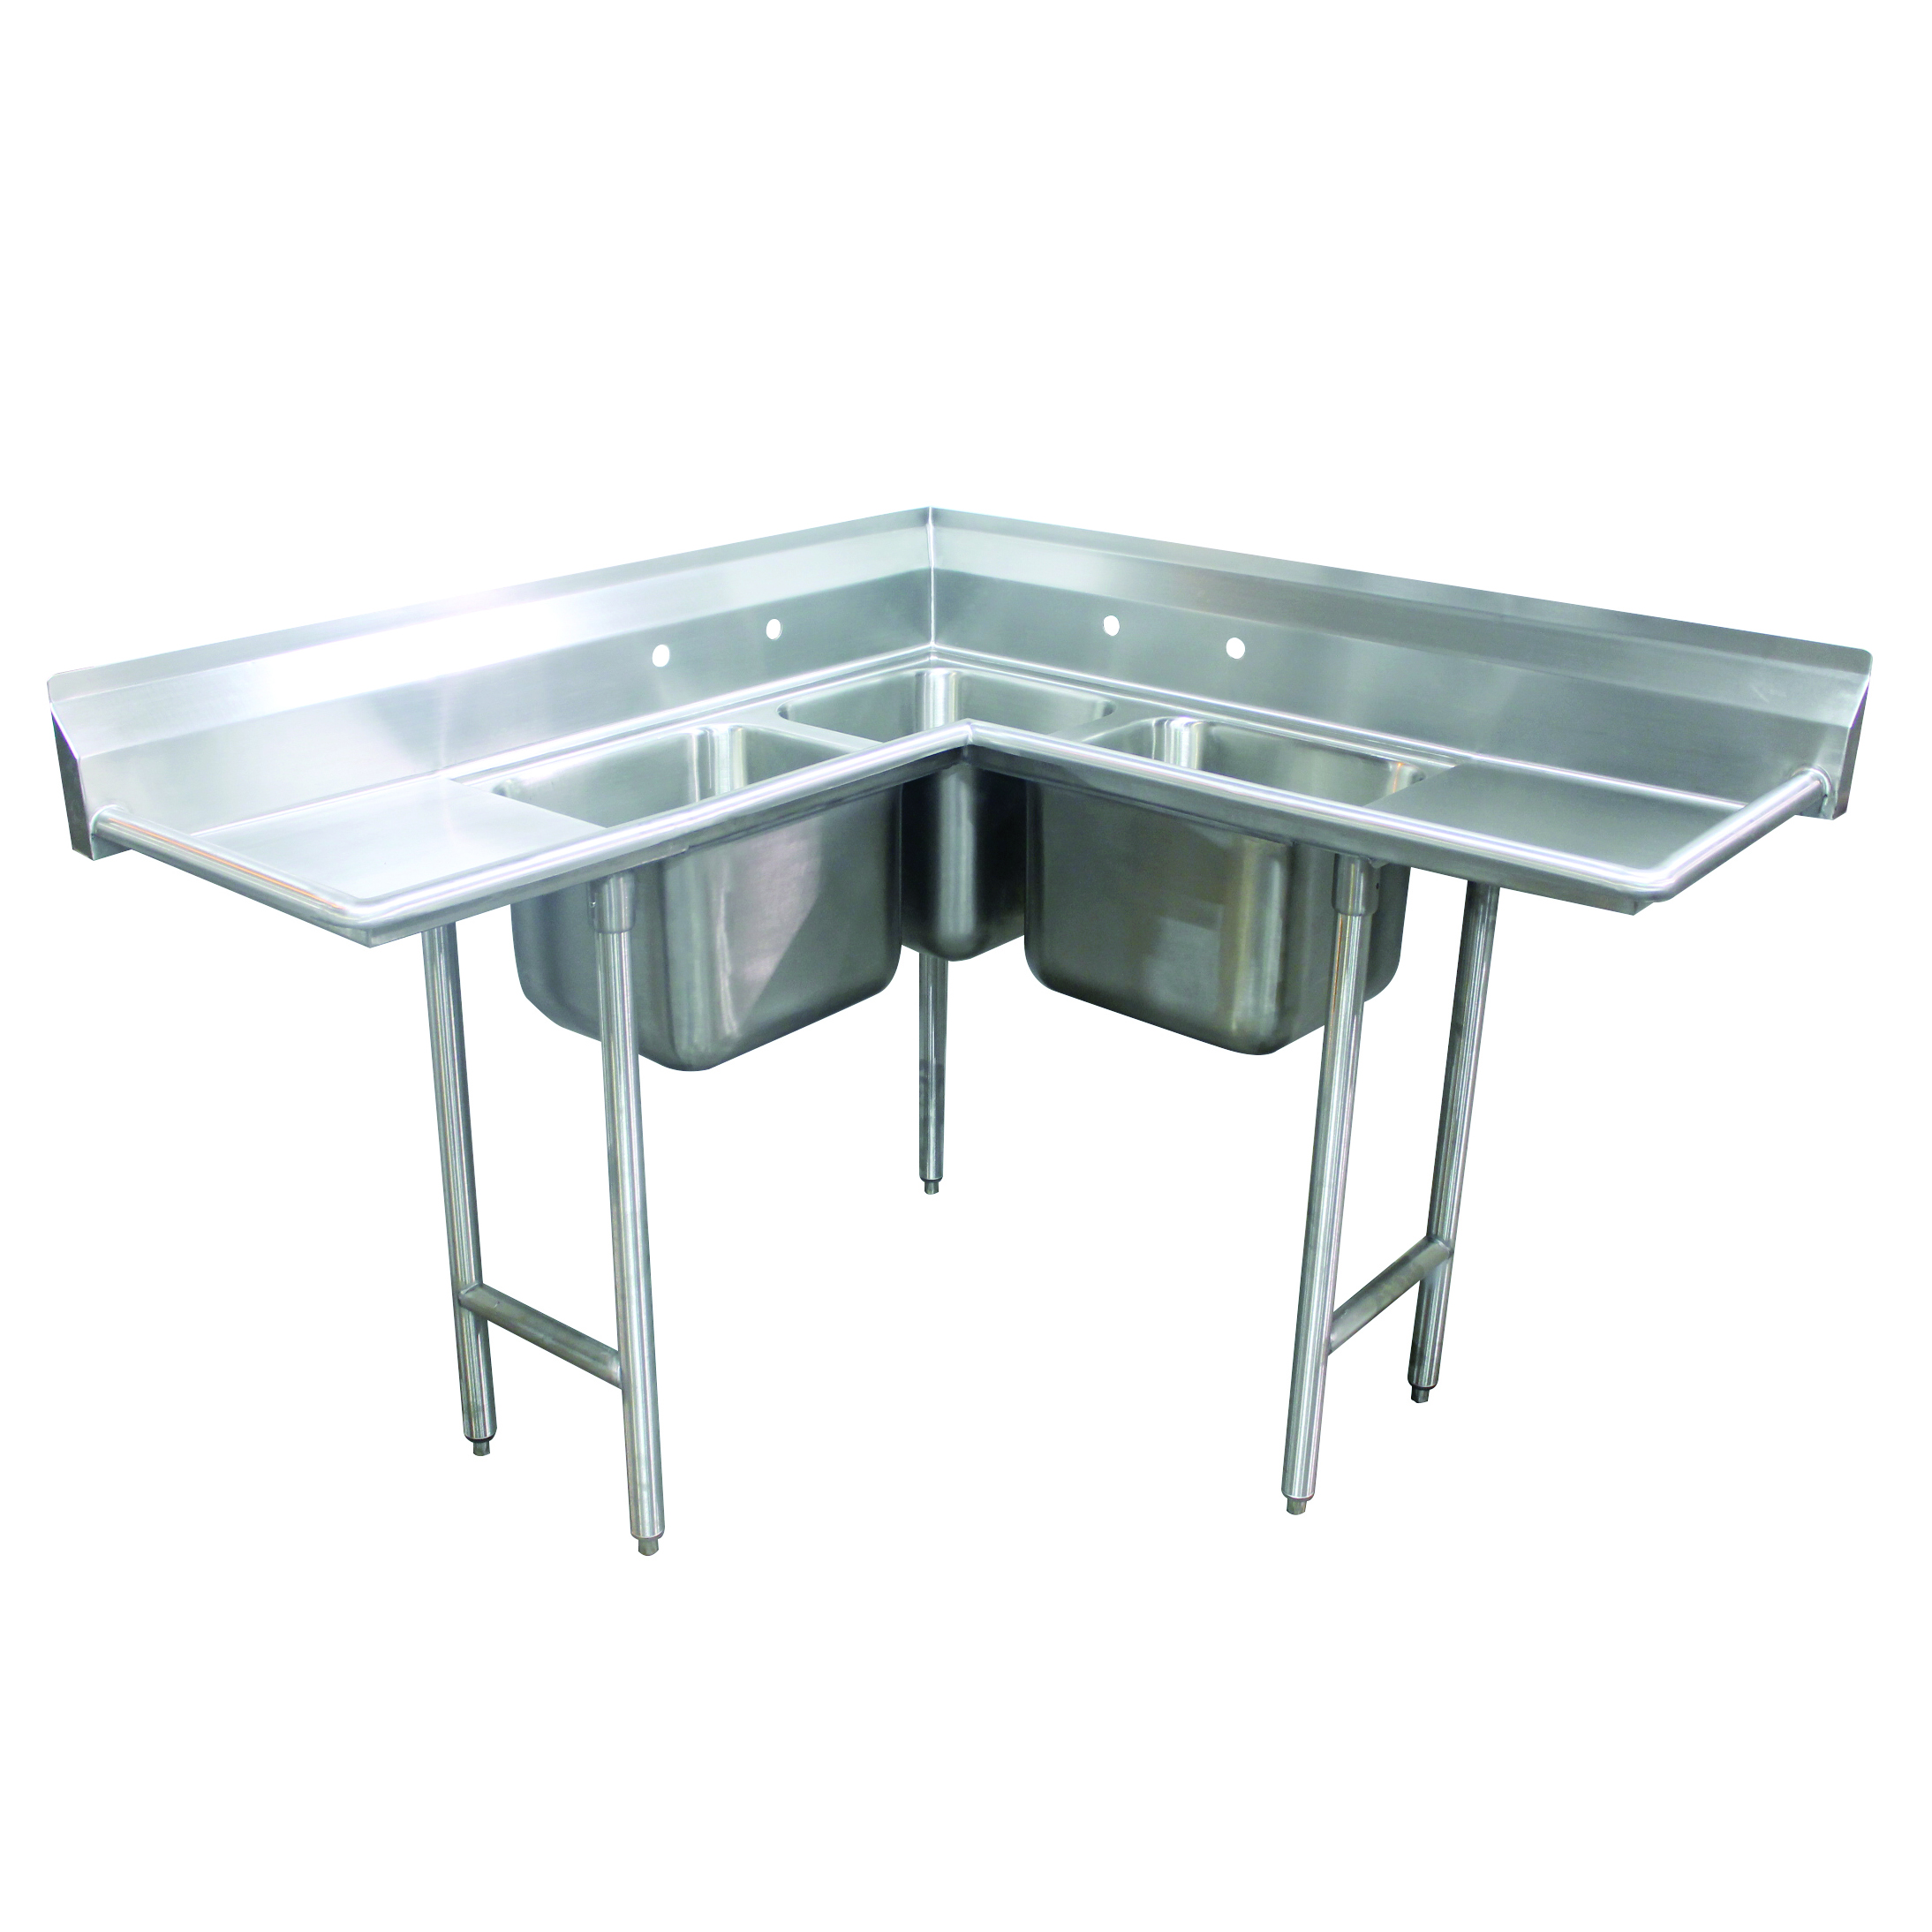 Advance Tabco 94-K5-11D-X sink, corner, compartment